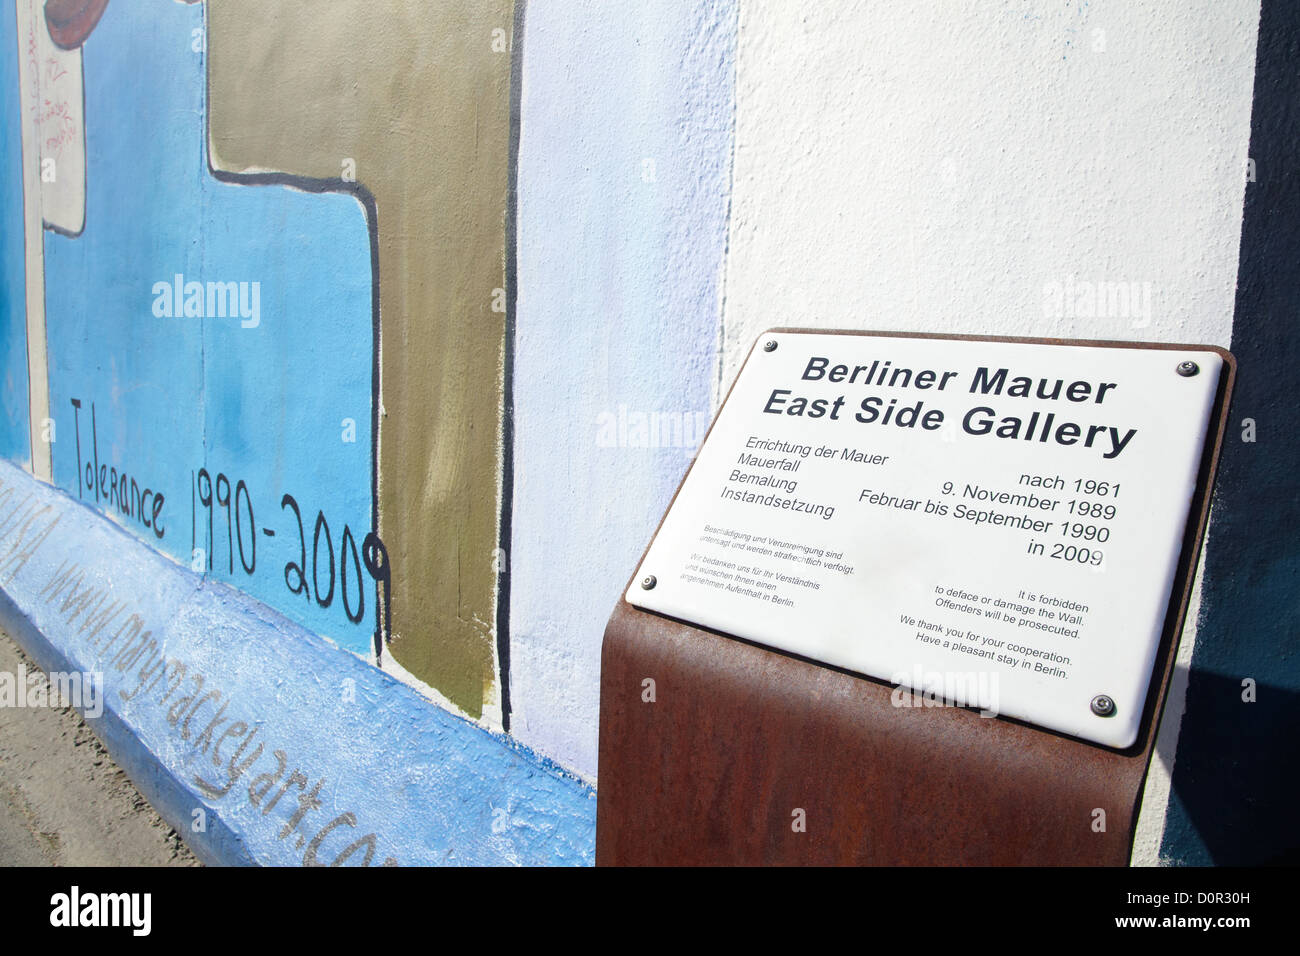 East Side Gallery sign in Berlin - Stock Image